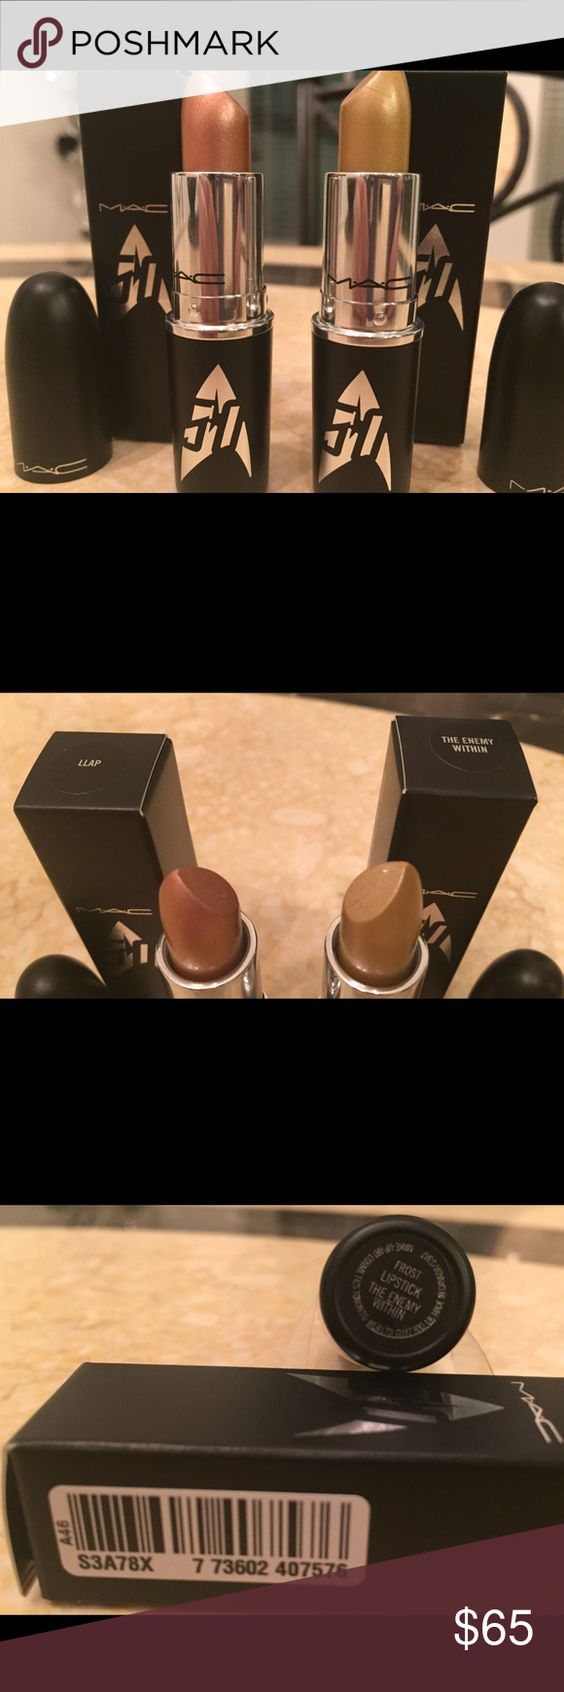 NEW MAC STAR TREK LIPSTICK DUO LLAP & ENEMY WITHIN NO TRADES PLEASE/SELLING AS A SET NEW  100% AUTHENTIC  NOT YET RELEASED TO THE GENERAL PUBLIC  EXPECTED TO SELL OUT IN A MATTER OF HOURS  MOST ANTICIPATED COLLECTION OF THE YEAR  M.A.C. COSMETICS  STAR TREK LIMITED EDITION LIPSTICK DUO SHADES INCLUDES  THE ENEMY WITHIN- A BEAUTIFUL FROSTED LIPSTICK WITH A NEUTRAL GOLD SHIMMER LLAP- A STUNNING FROSTED LIPSTICK IN AN ICY ROSE CHAMPAGNE SHADE BOTH LIPSTICKS COME IN AN LIMITED EDITION STAR TREK…